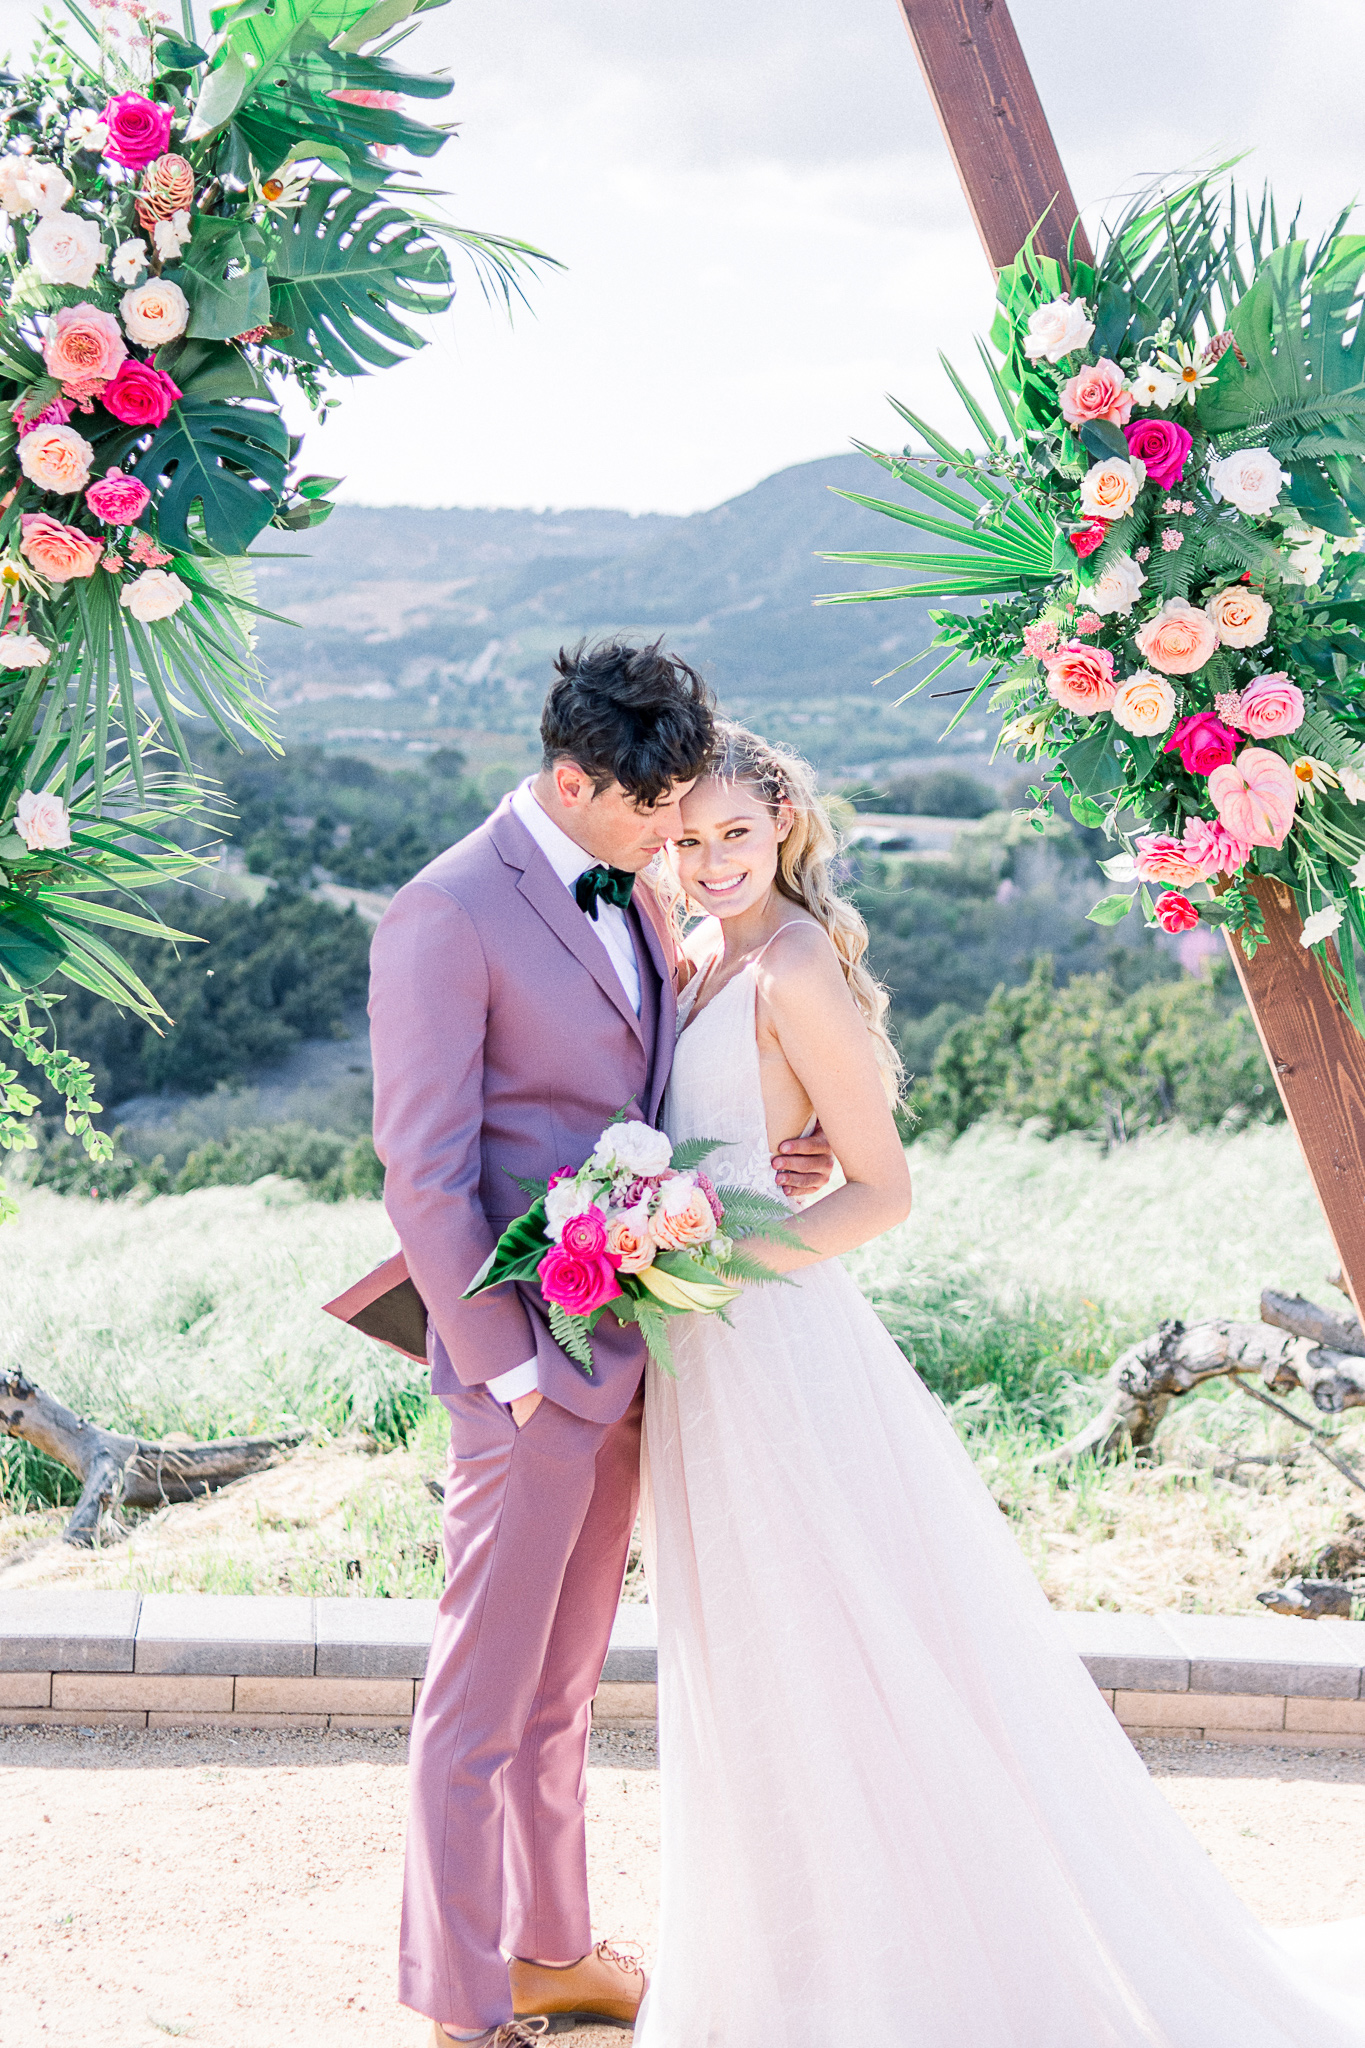 emerald-peak-temecula-wedding-bride-and-groom-ceremony-bride-in-a-blush-tulle-gown-with-straps-groom-in-a-rose-pink-suit-with-a-green-velvet-bow-tie